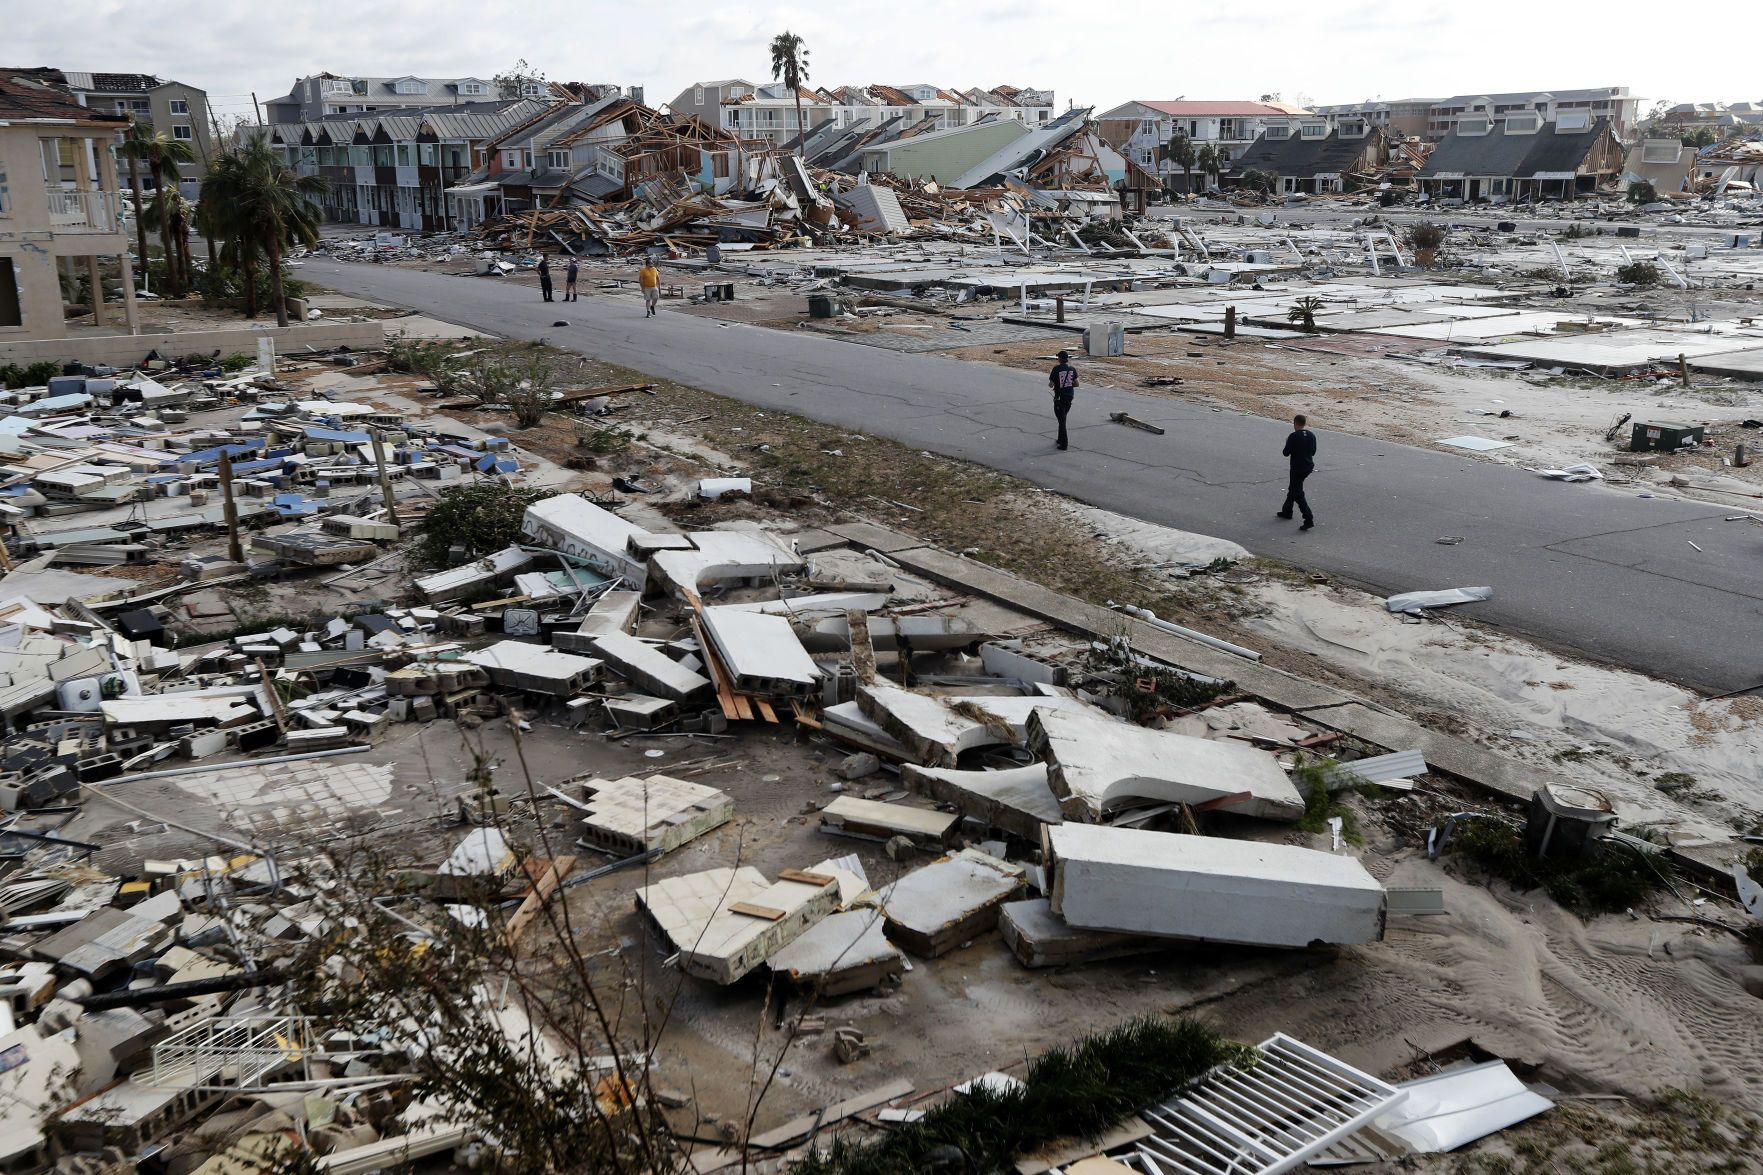 Changed Forever Hurricane Michael Causes Unimaginable Destruction In Florida Panhandle At Least 3 Dead Mexico Beach Visit Florida Florida Vacation